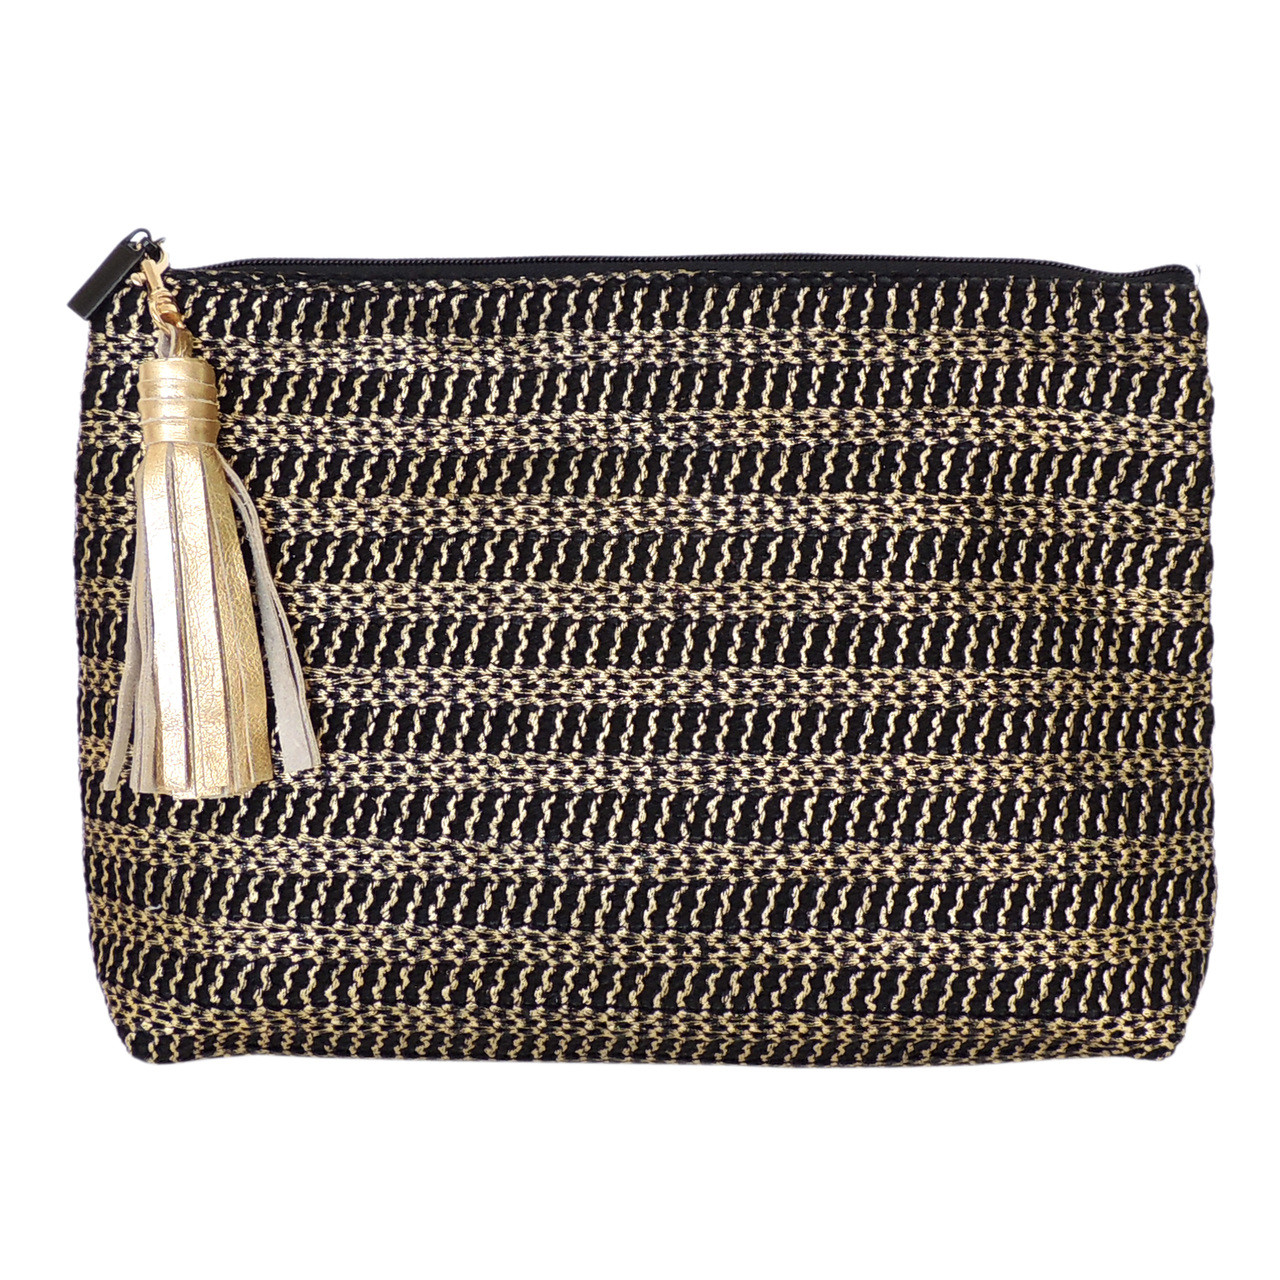 Carryall Clutch in Gold Woven, with tassel